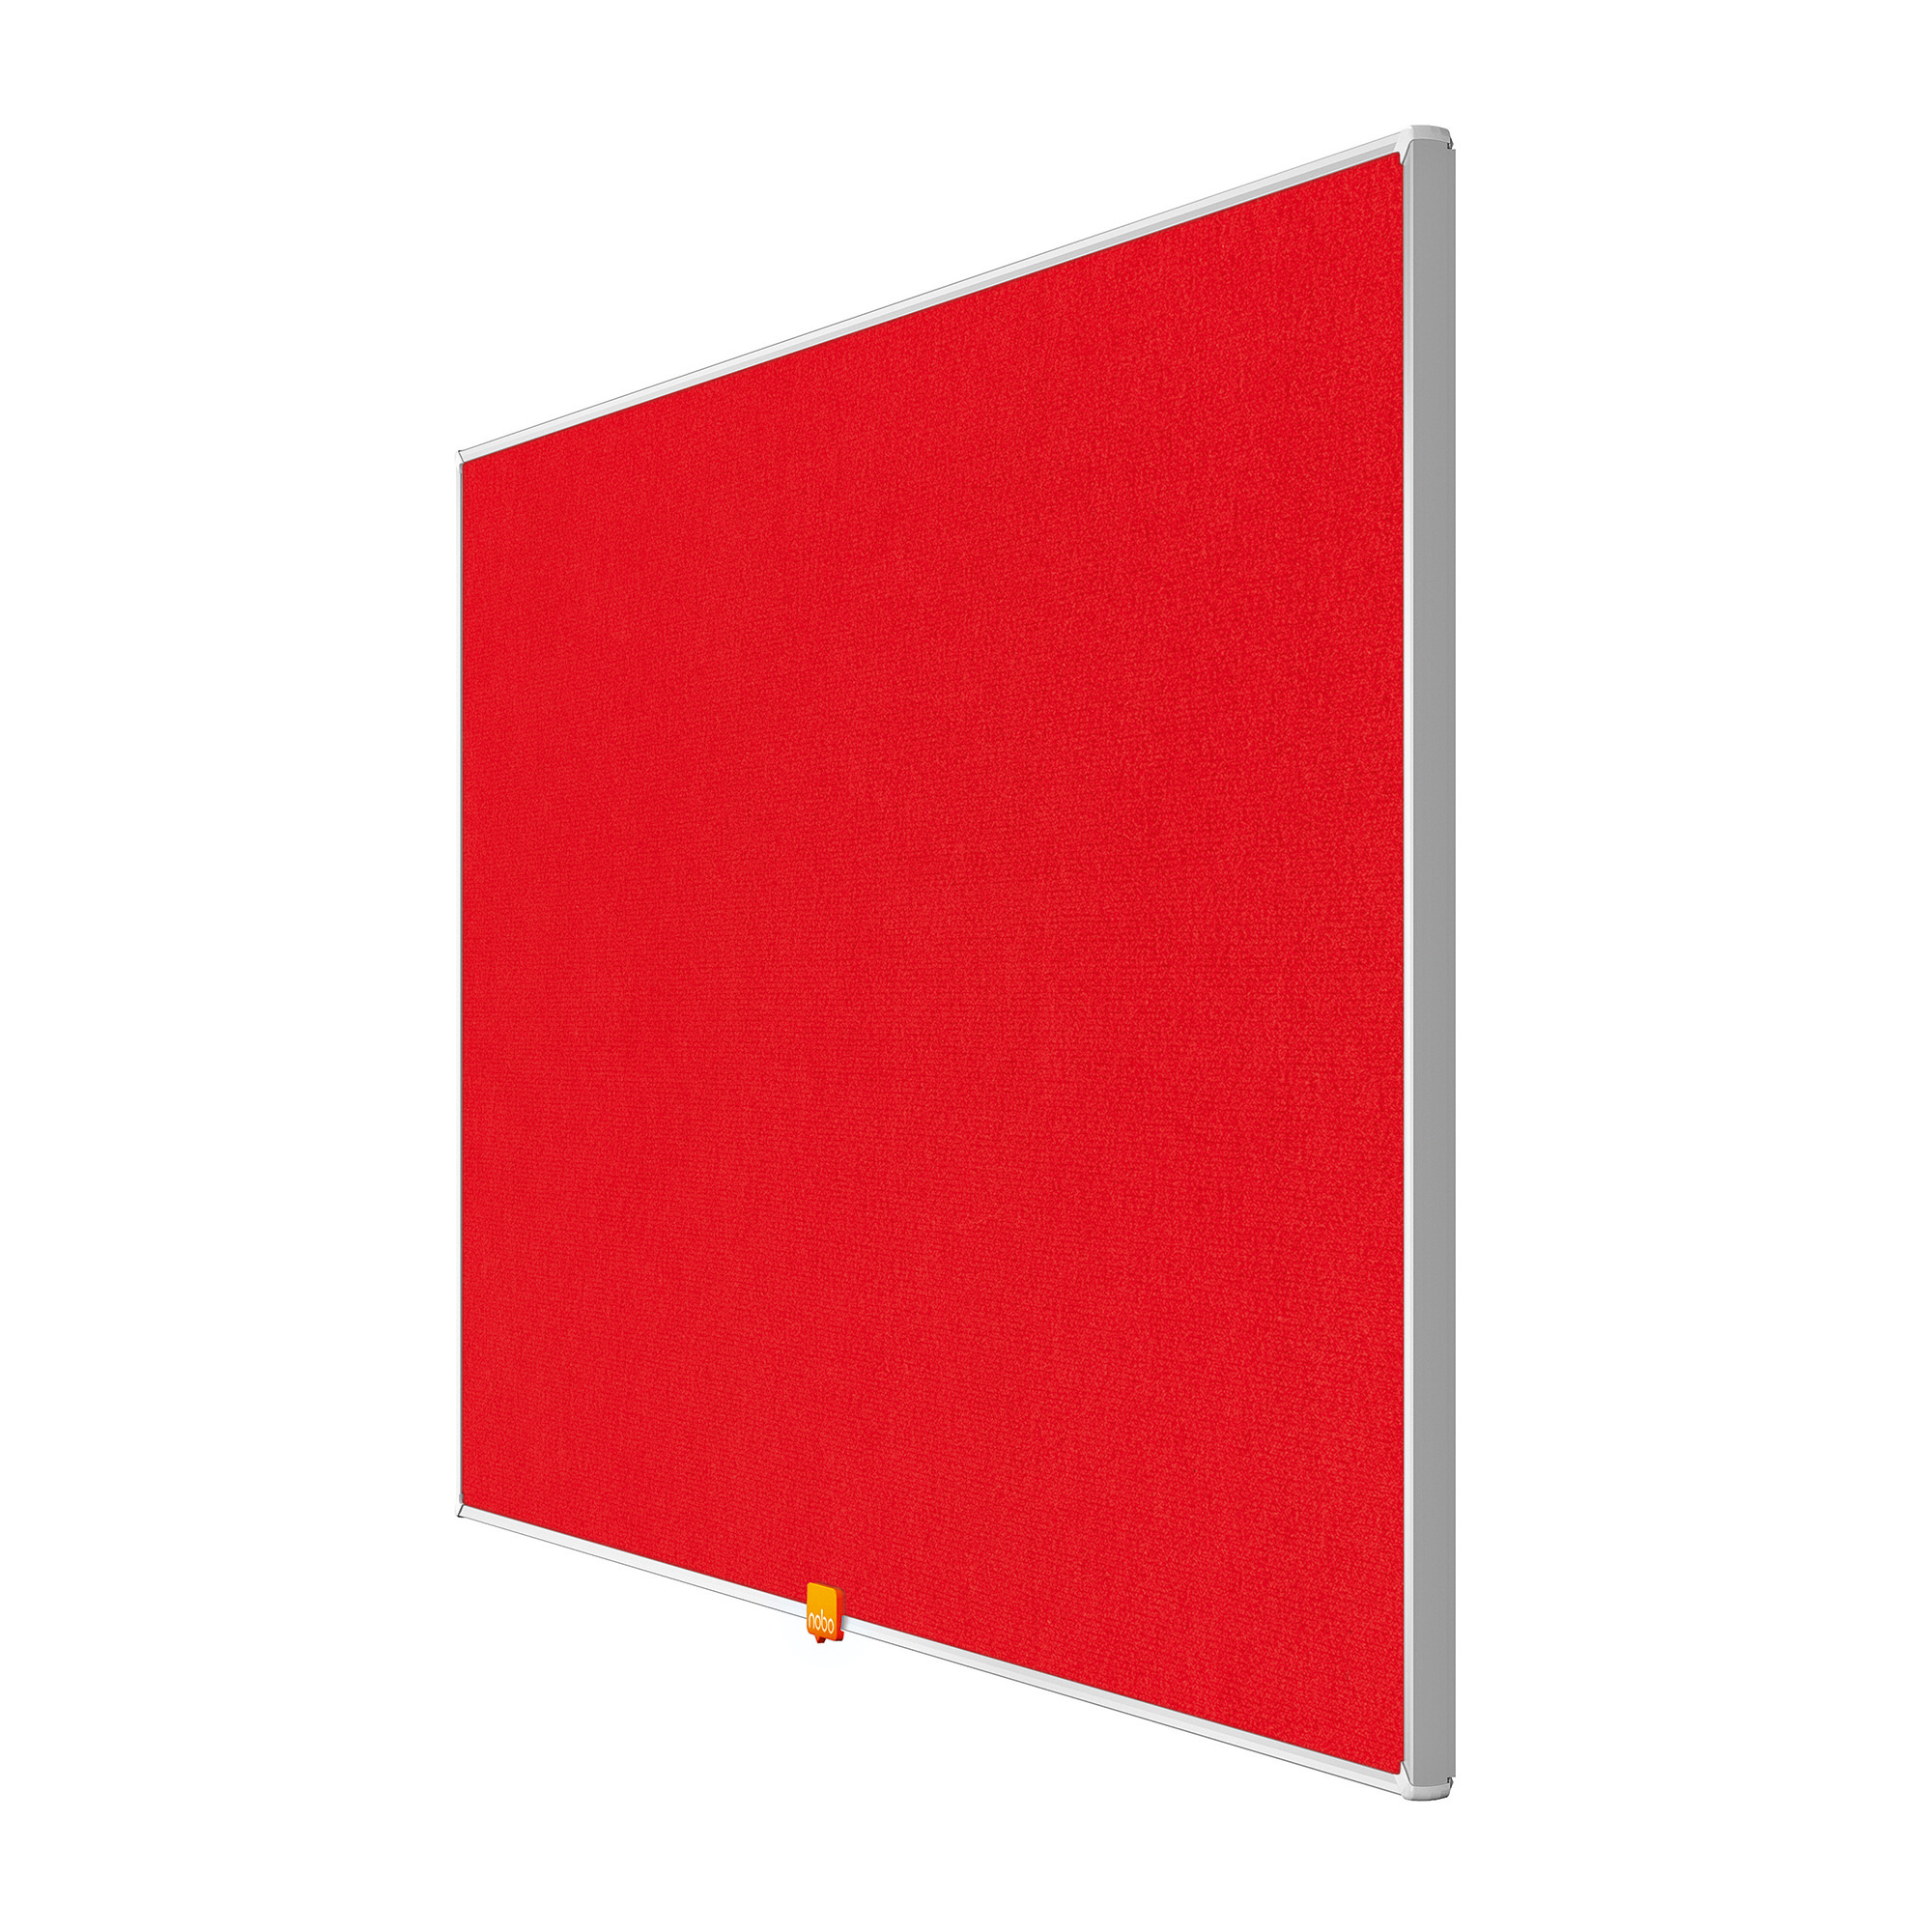 Bulletin boards or accessories Nobo 40 inch Widescreen Felt Board 890x500mm Red Ref 1905311